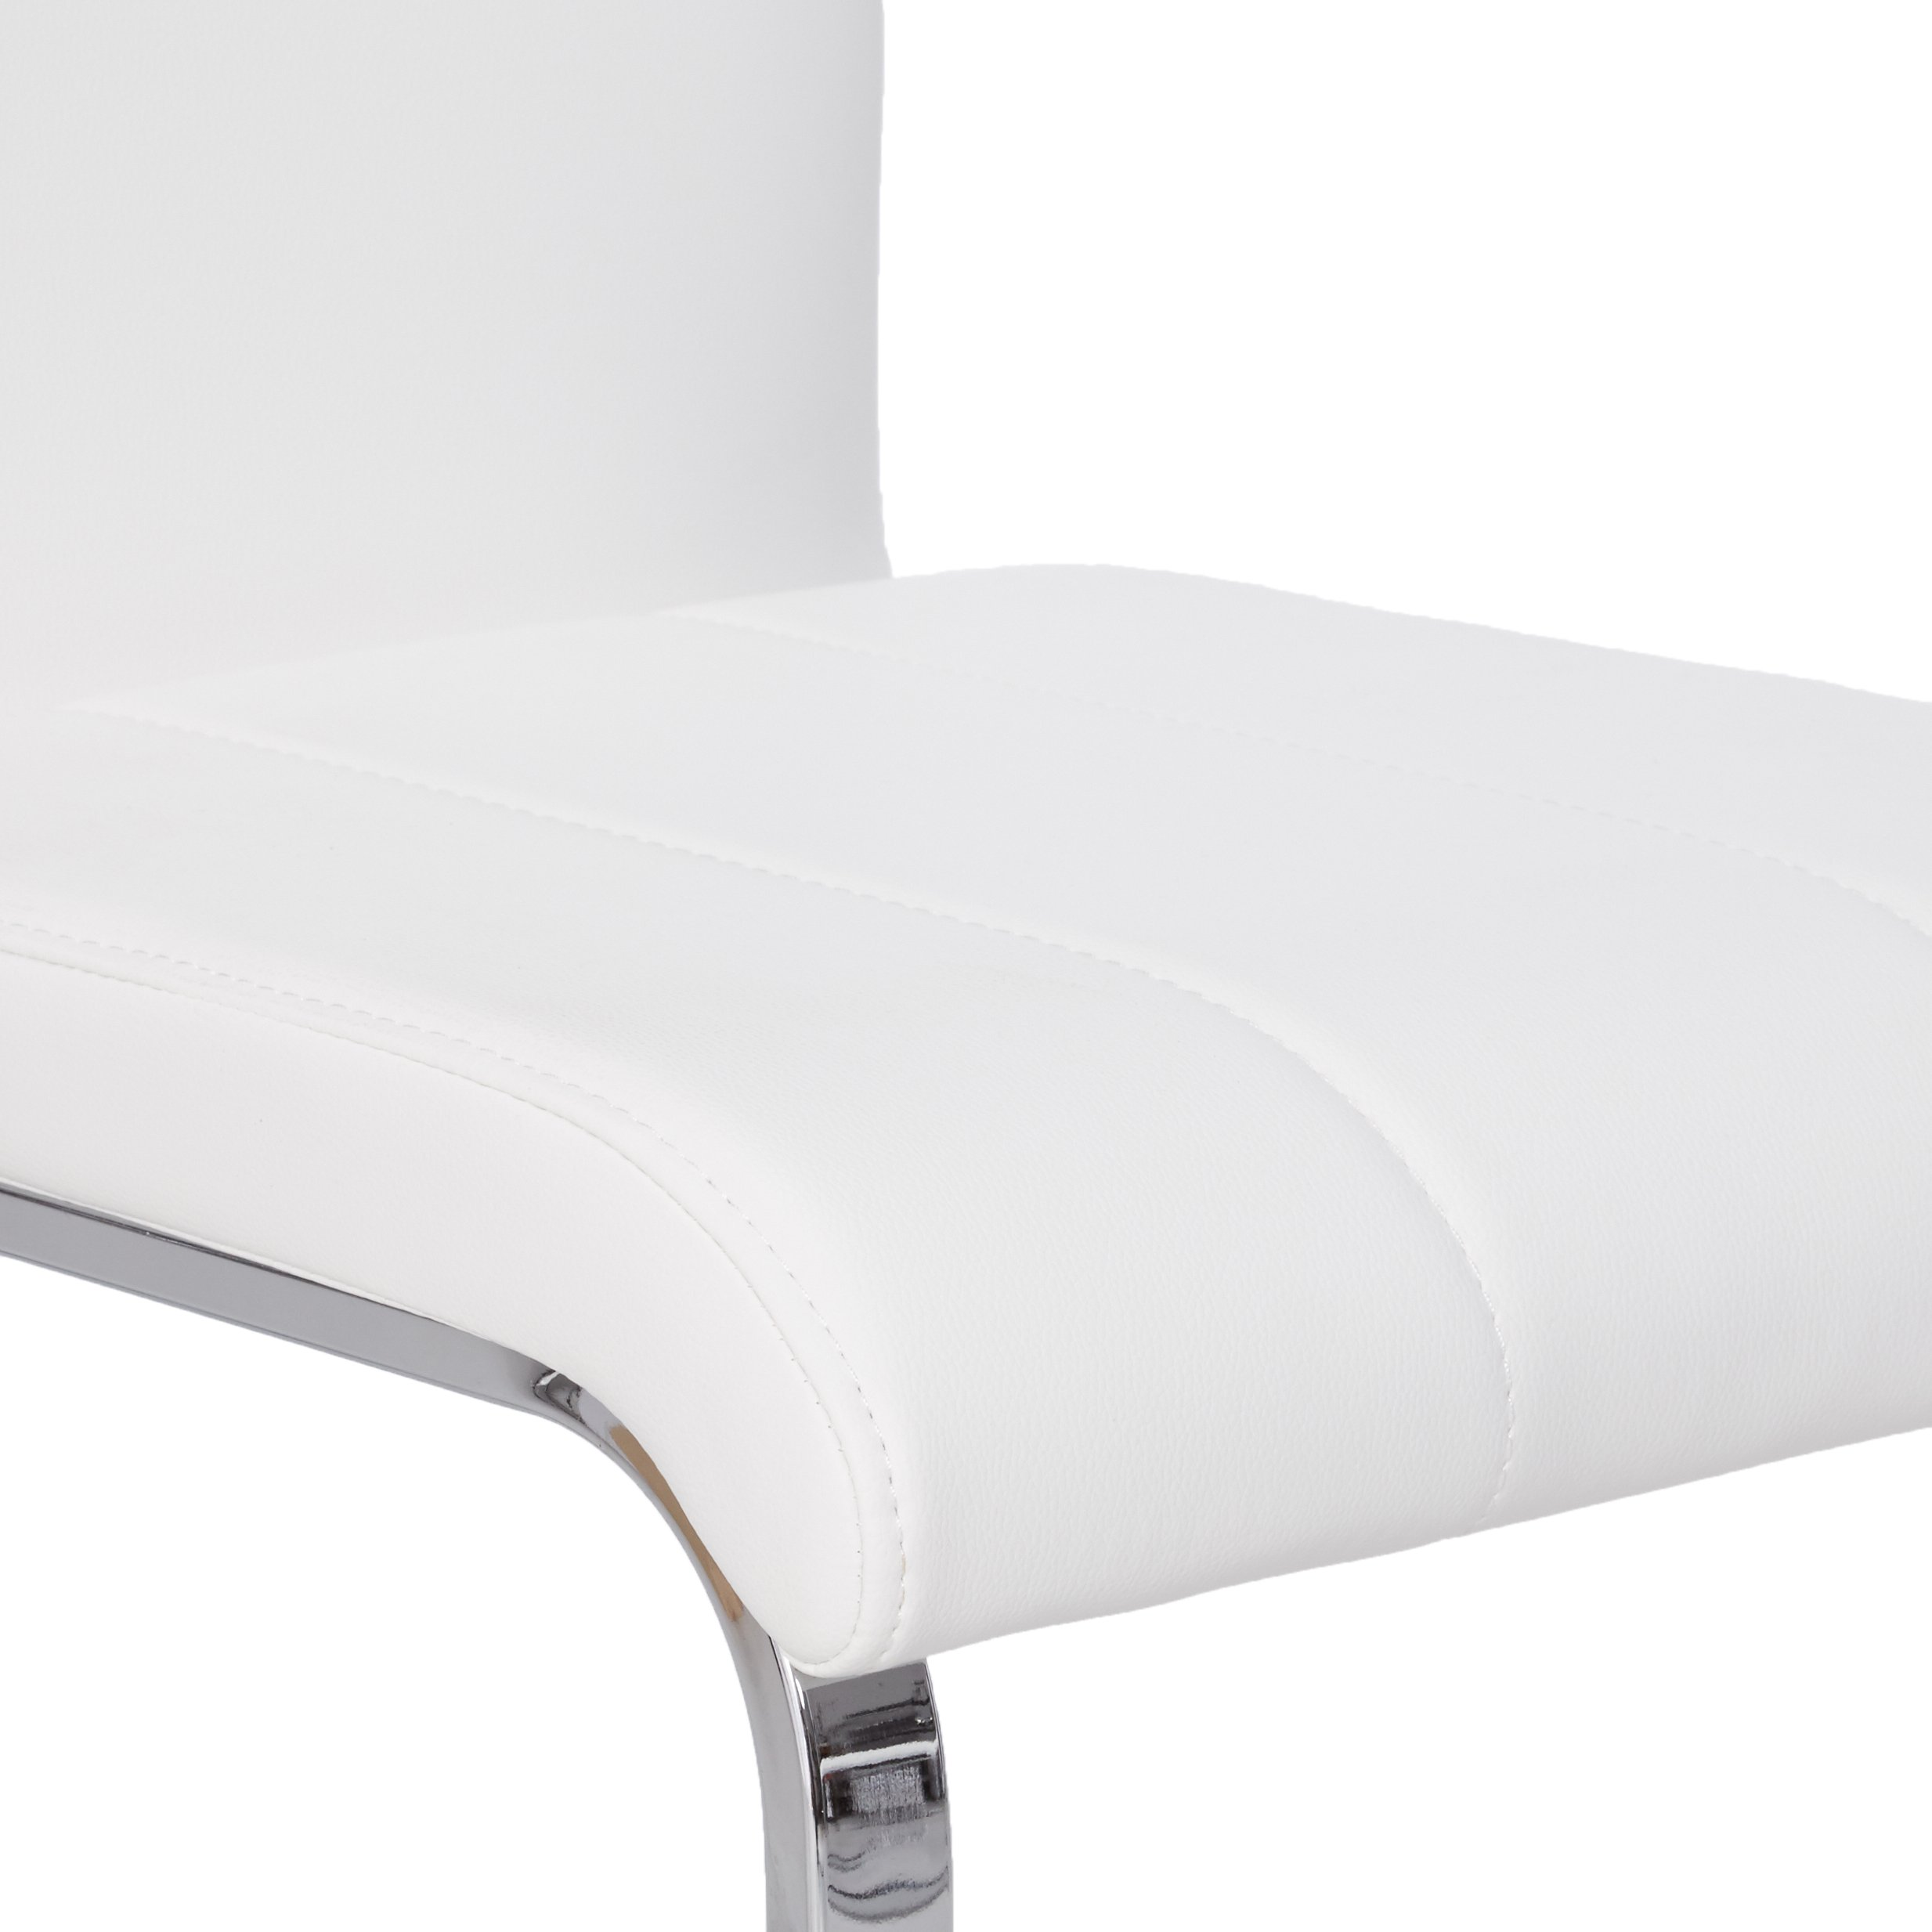 Faux Leather Dining Chairs Chrome and White (Set of 4) by Coaster Home Furnishings (Image #5)